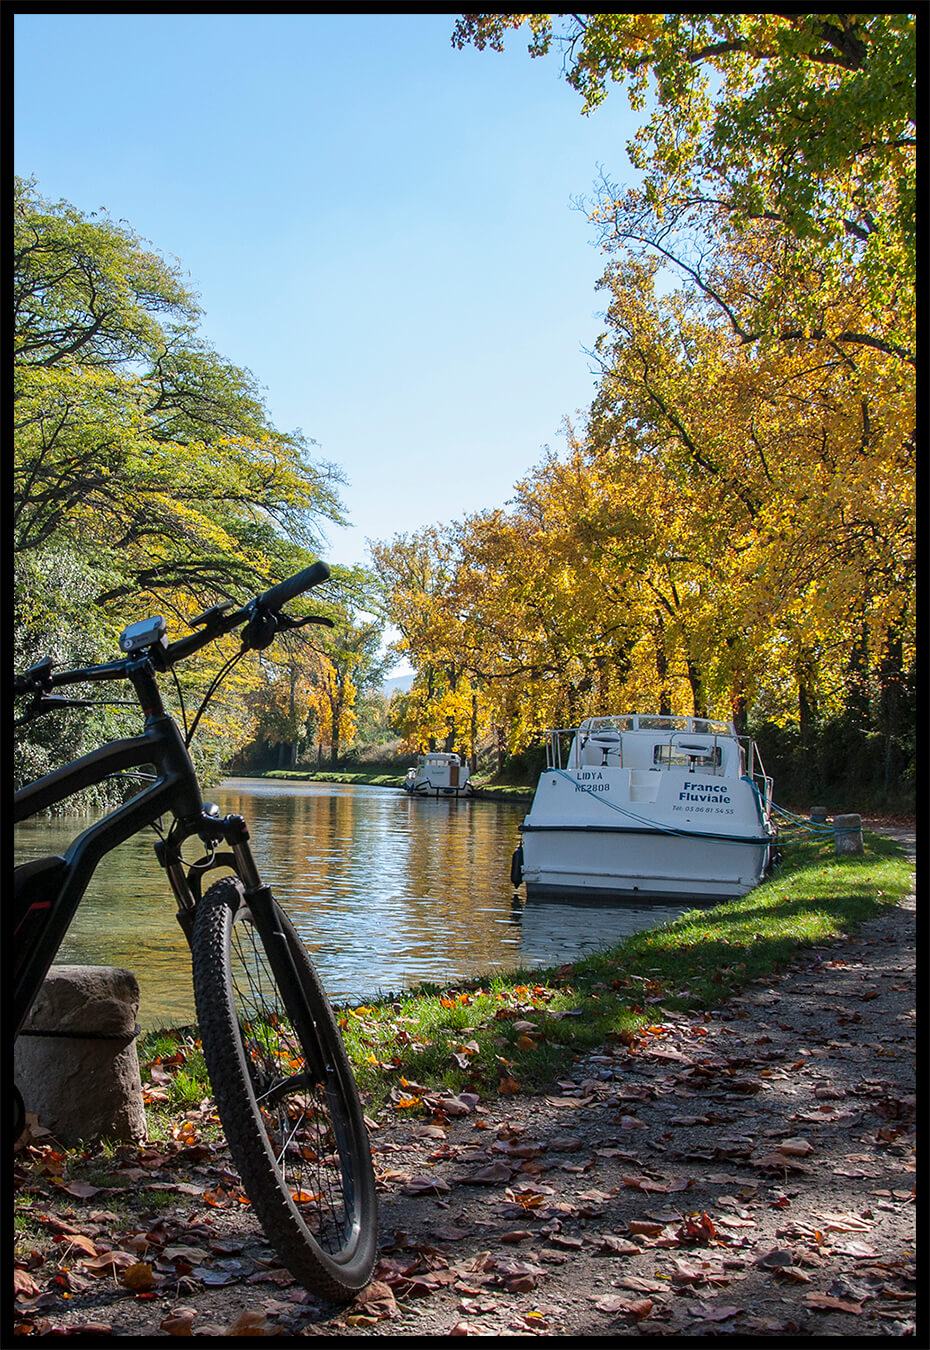 E-bike tour on the banks of the Canal du Midi